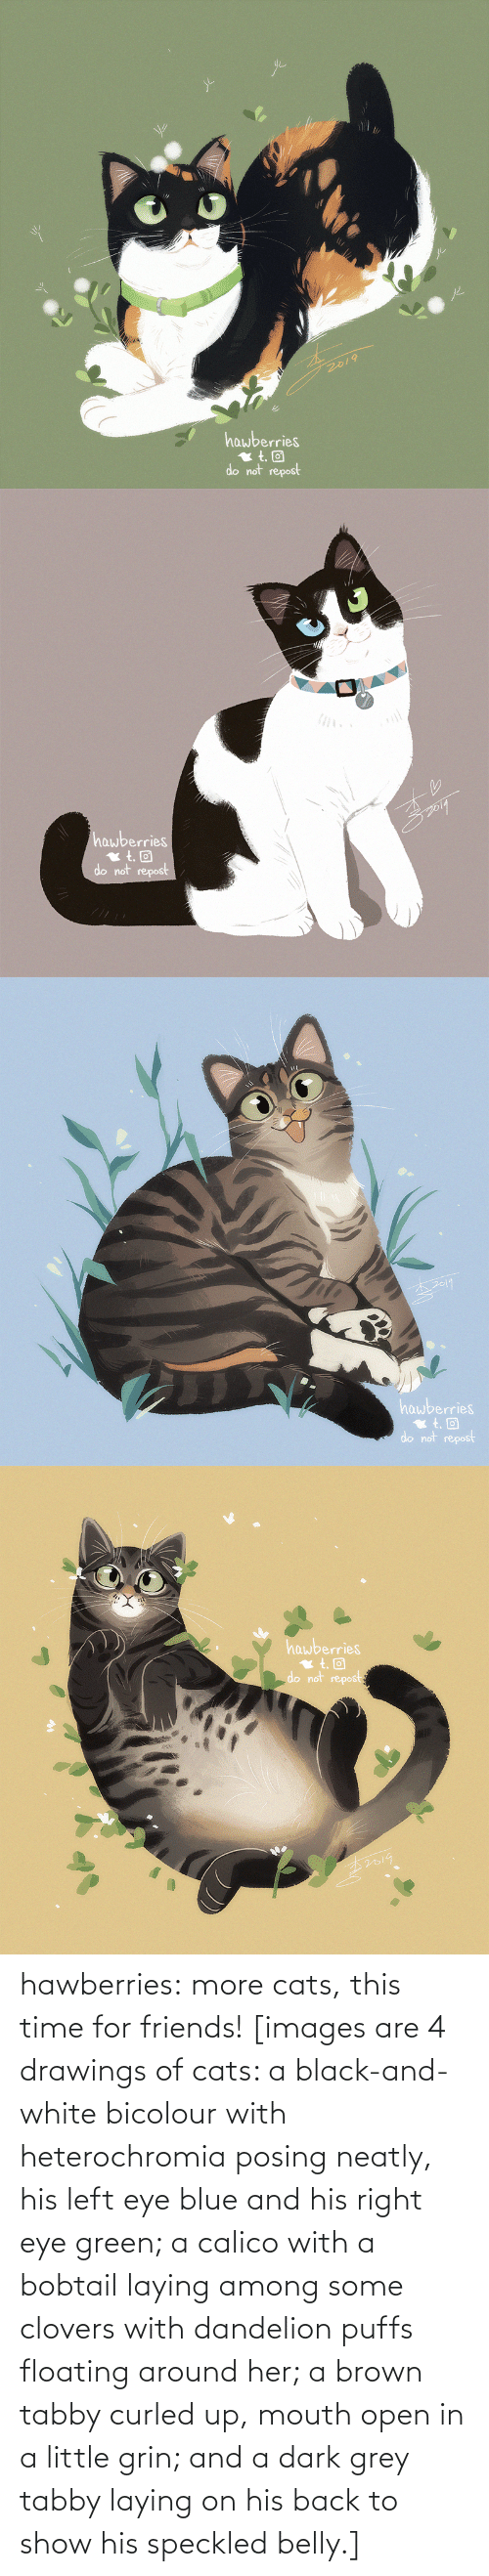 Among: 2019  hawberries  do not repost   hawberries  do not repost   hawberries  do not repost   hawberries  do not repost hawberries: more cats, this time for friends! [images are 4 drawings of cats: a black-and-white bicolour with heterochromia posing neatly, his left eye blue and his right eye green; a calico with a bobtail laying among some clovers with dandelion puffs floating around her; a brown tabby curled up, mouth open in a little grin; and a dark grey tabby laying on his back to show his speckled belly.]